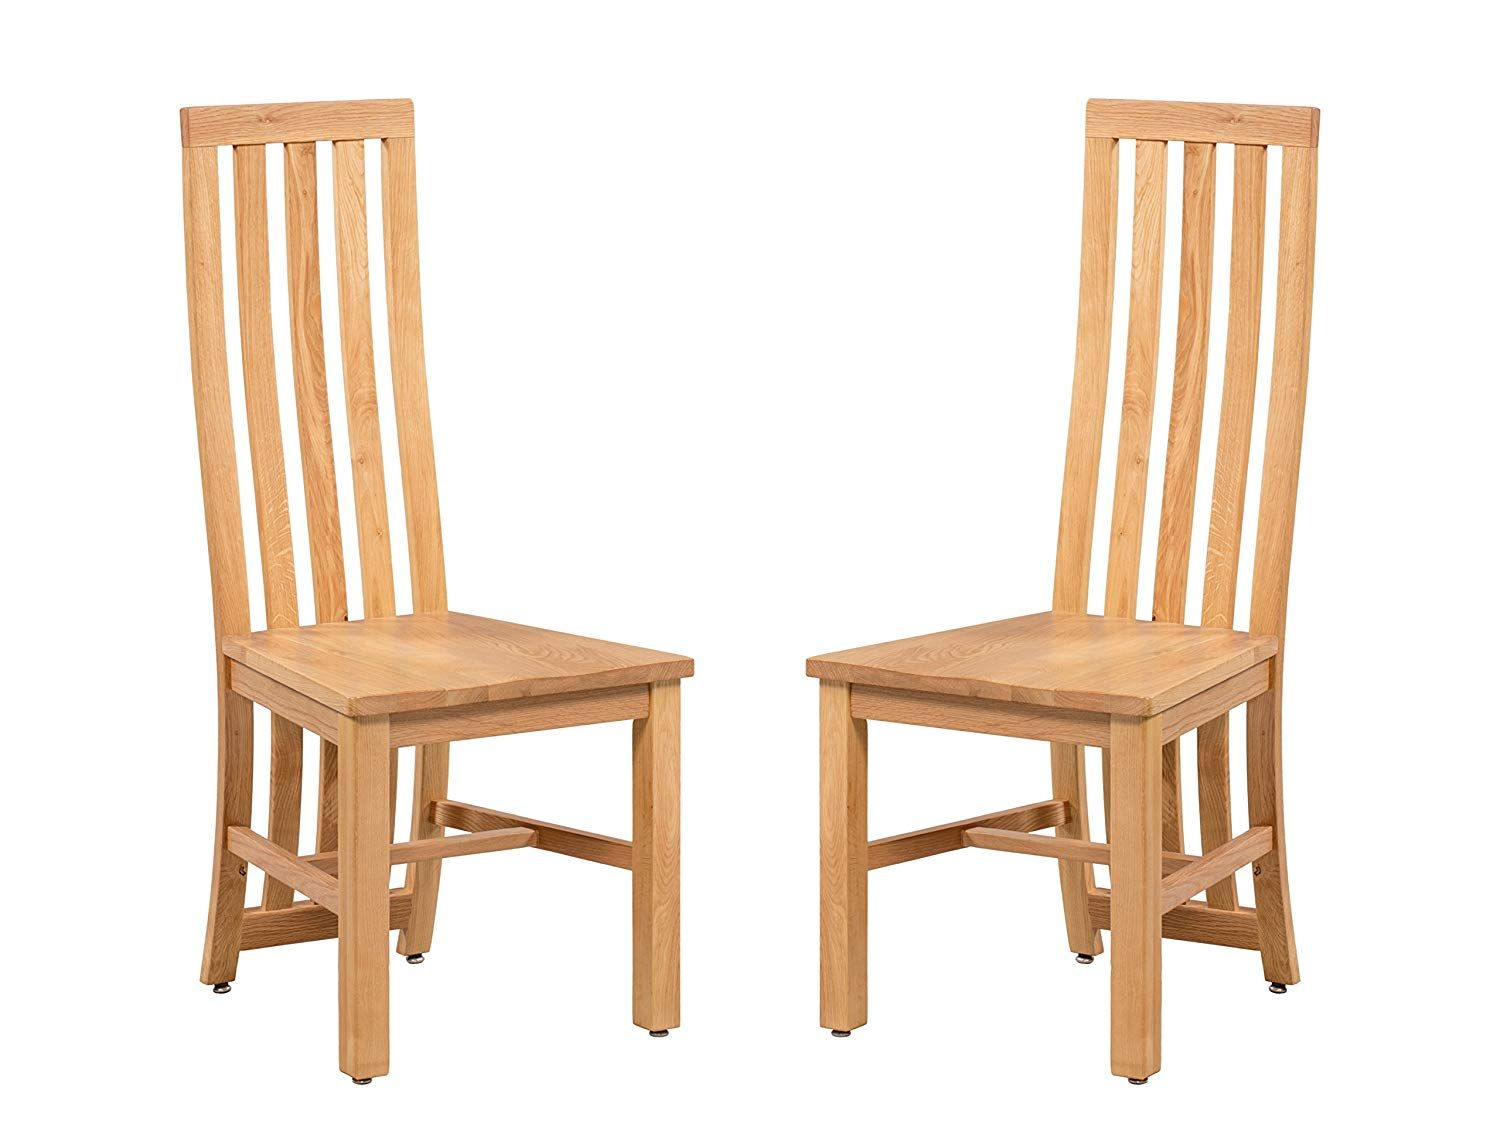 Trithi Furniture Toronto American Solid Oak Dining Chair With